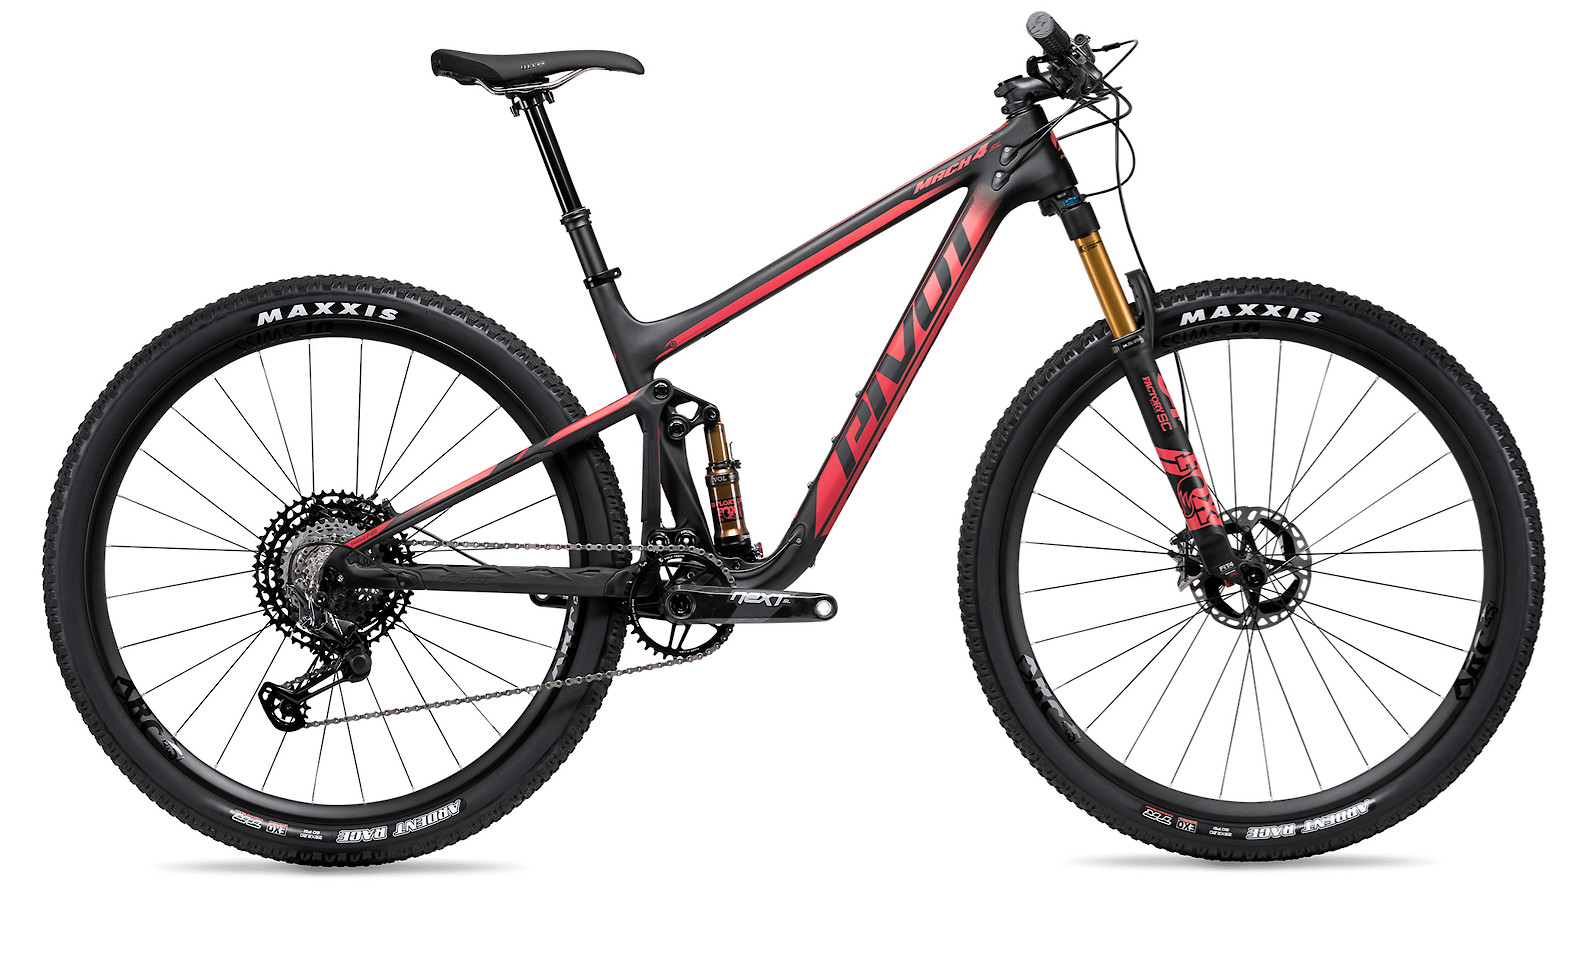 2020 Pivot Mach 4 SL in Cherry (Team XTR model pictured)